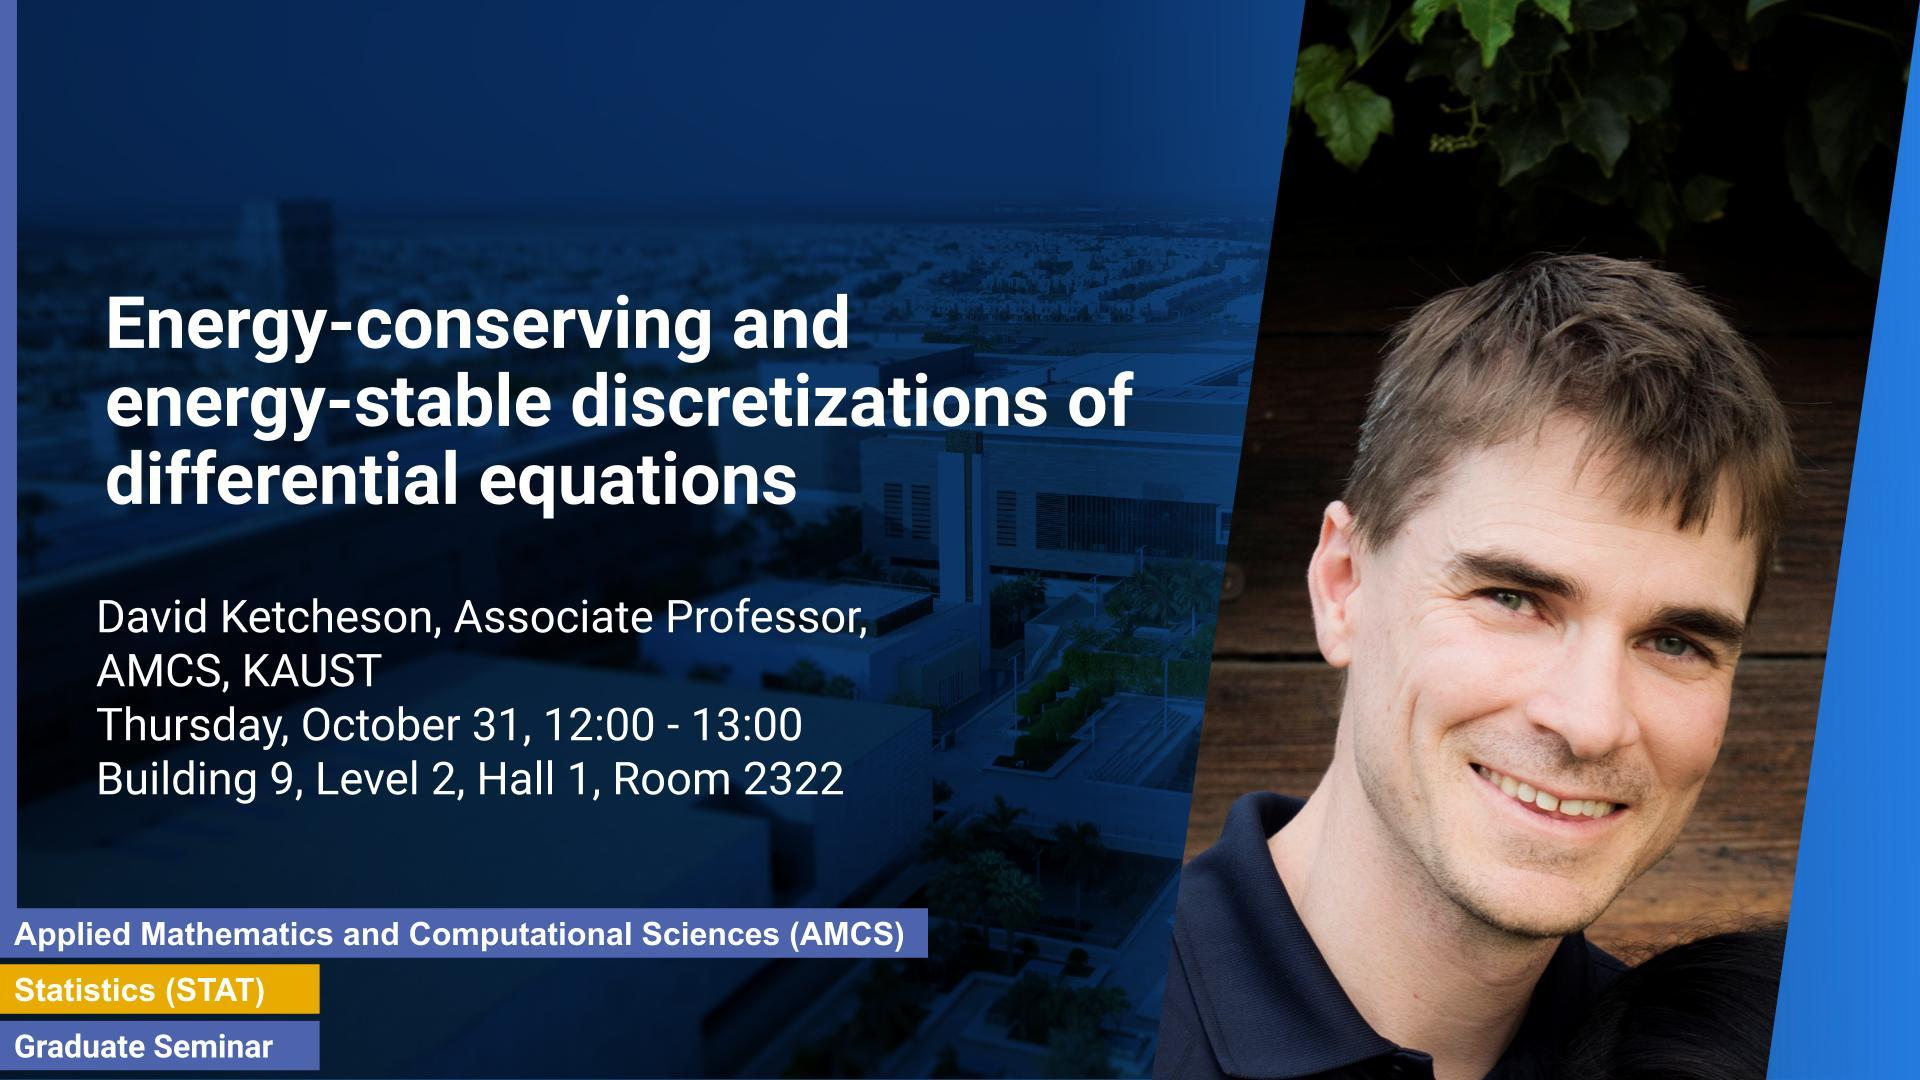 KAUST CEMSE AMCS Graduate Seminar David Ketcheson Energy conserving and energy stable discretizations of DE